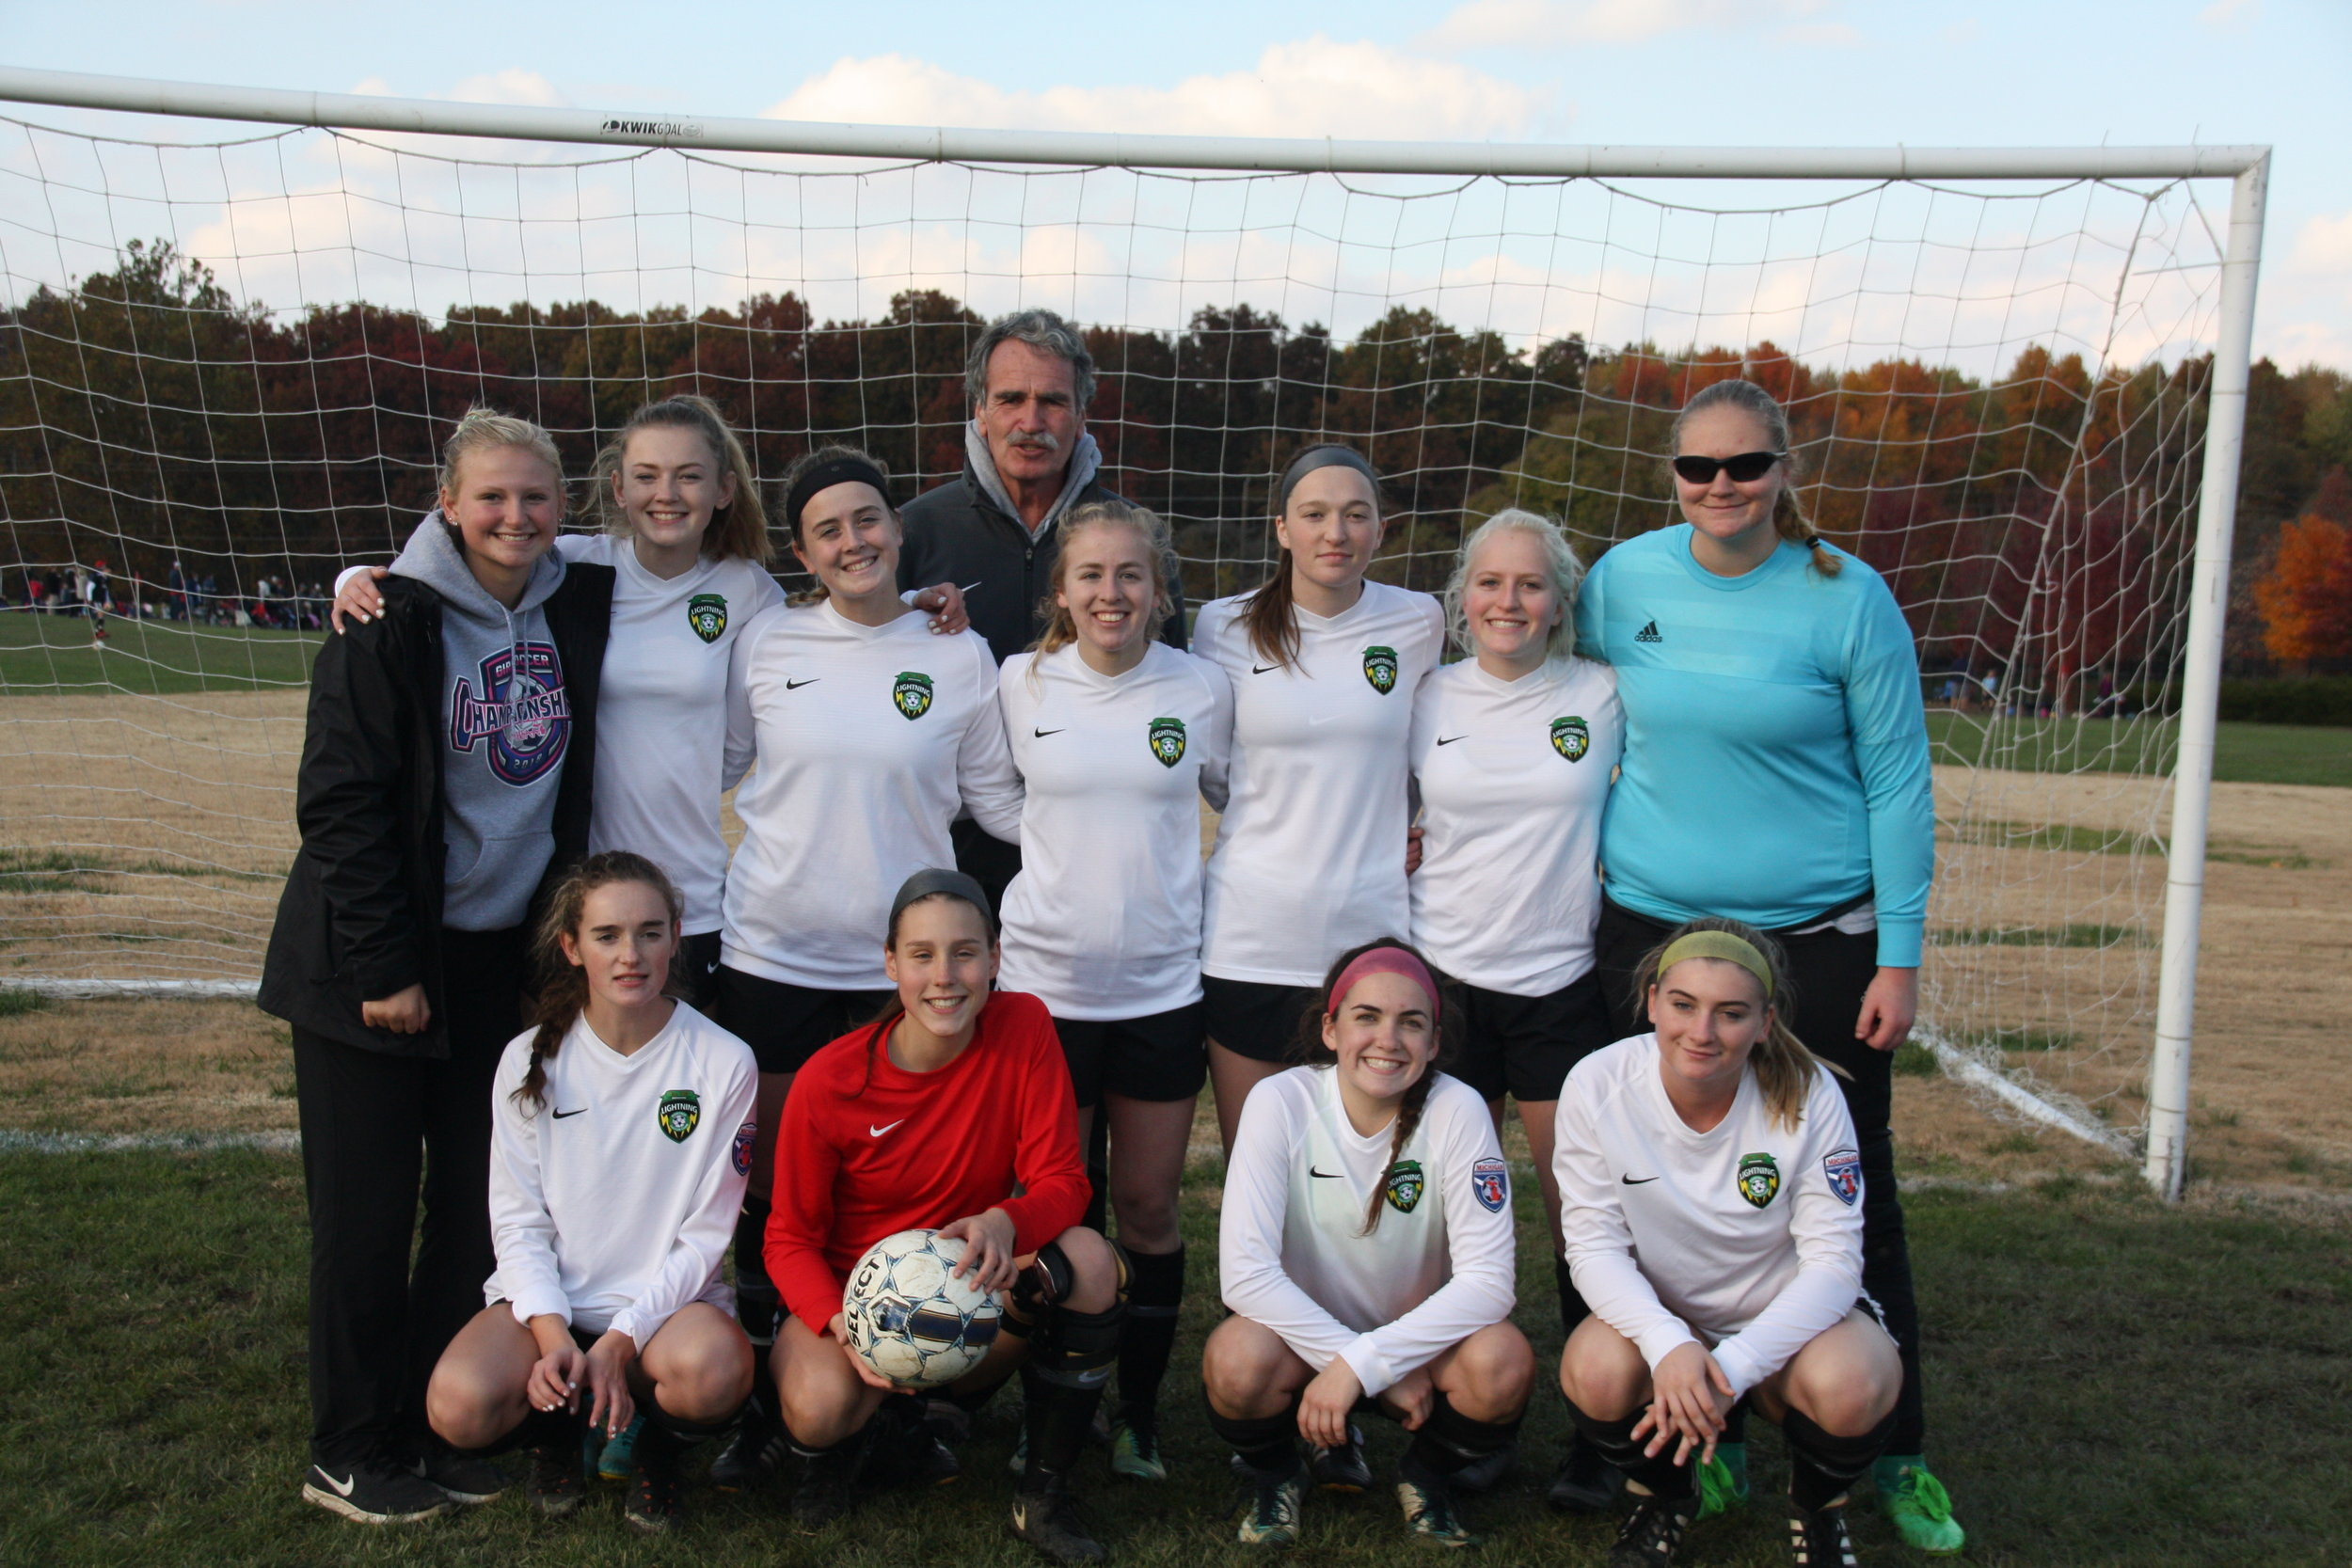 PSC 00 Green Girls Team - Players that joined team 2012-2013